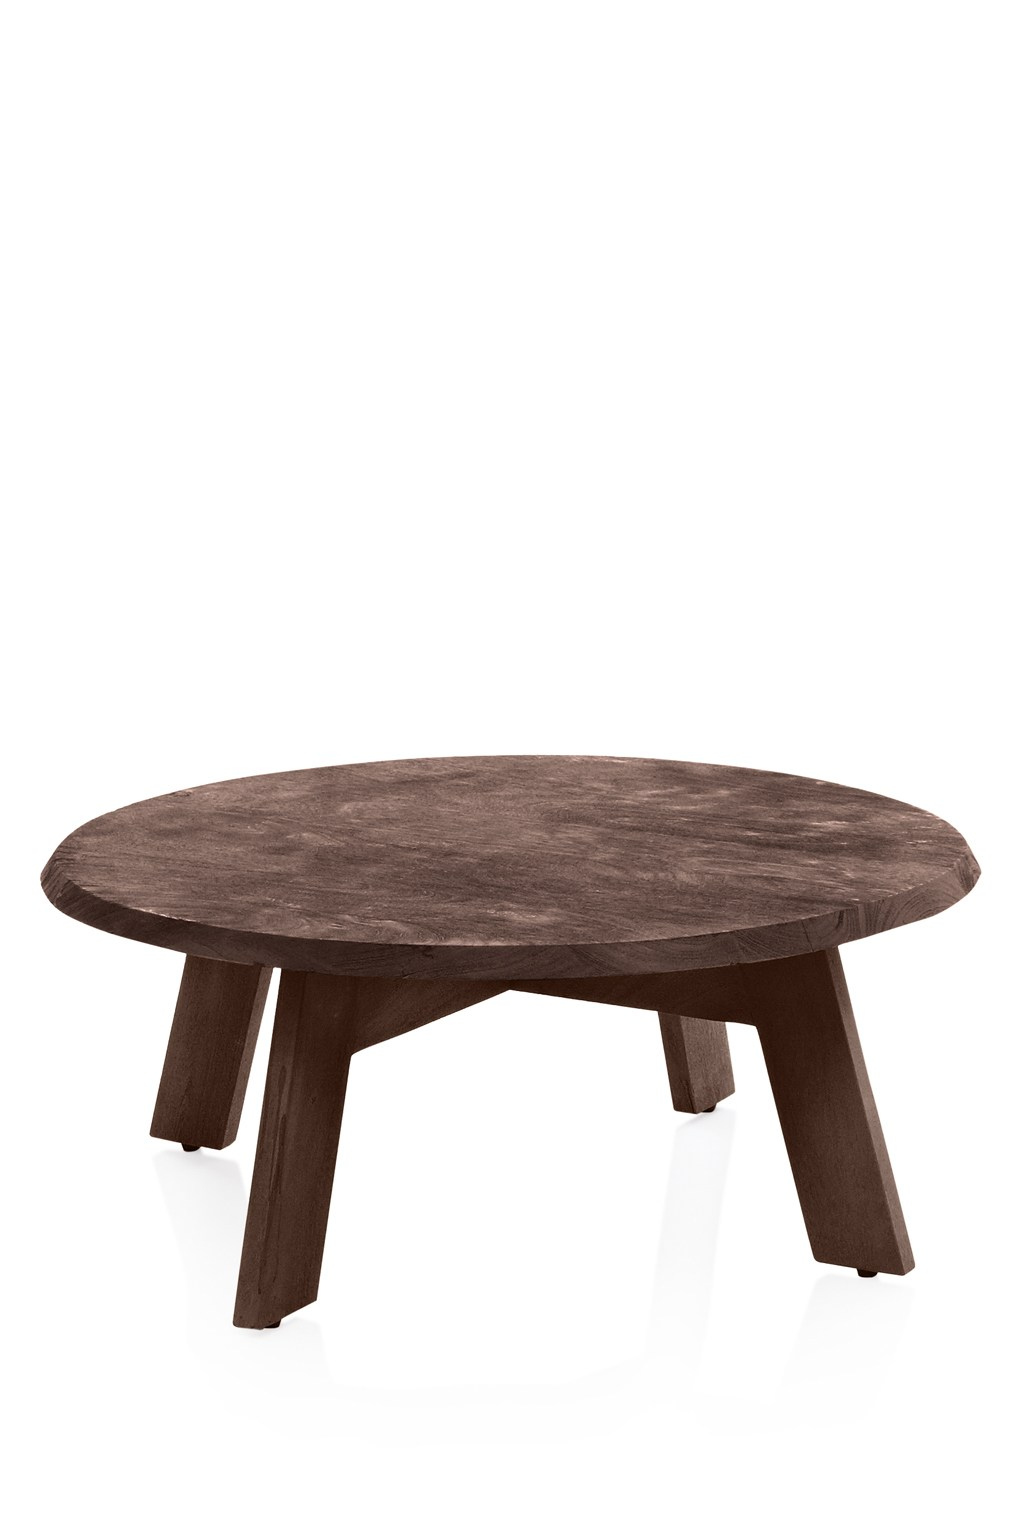 dark wood coffee table home old season french connection